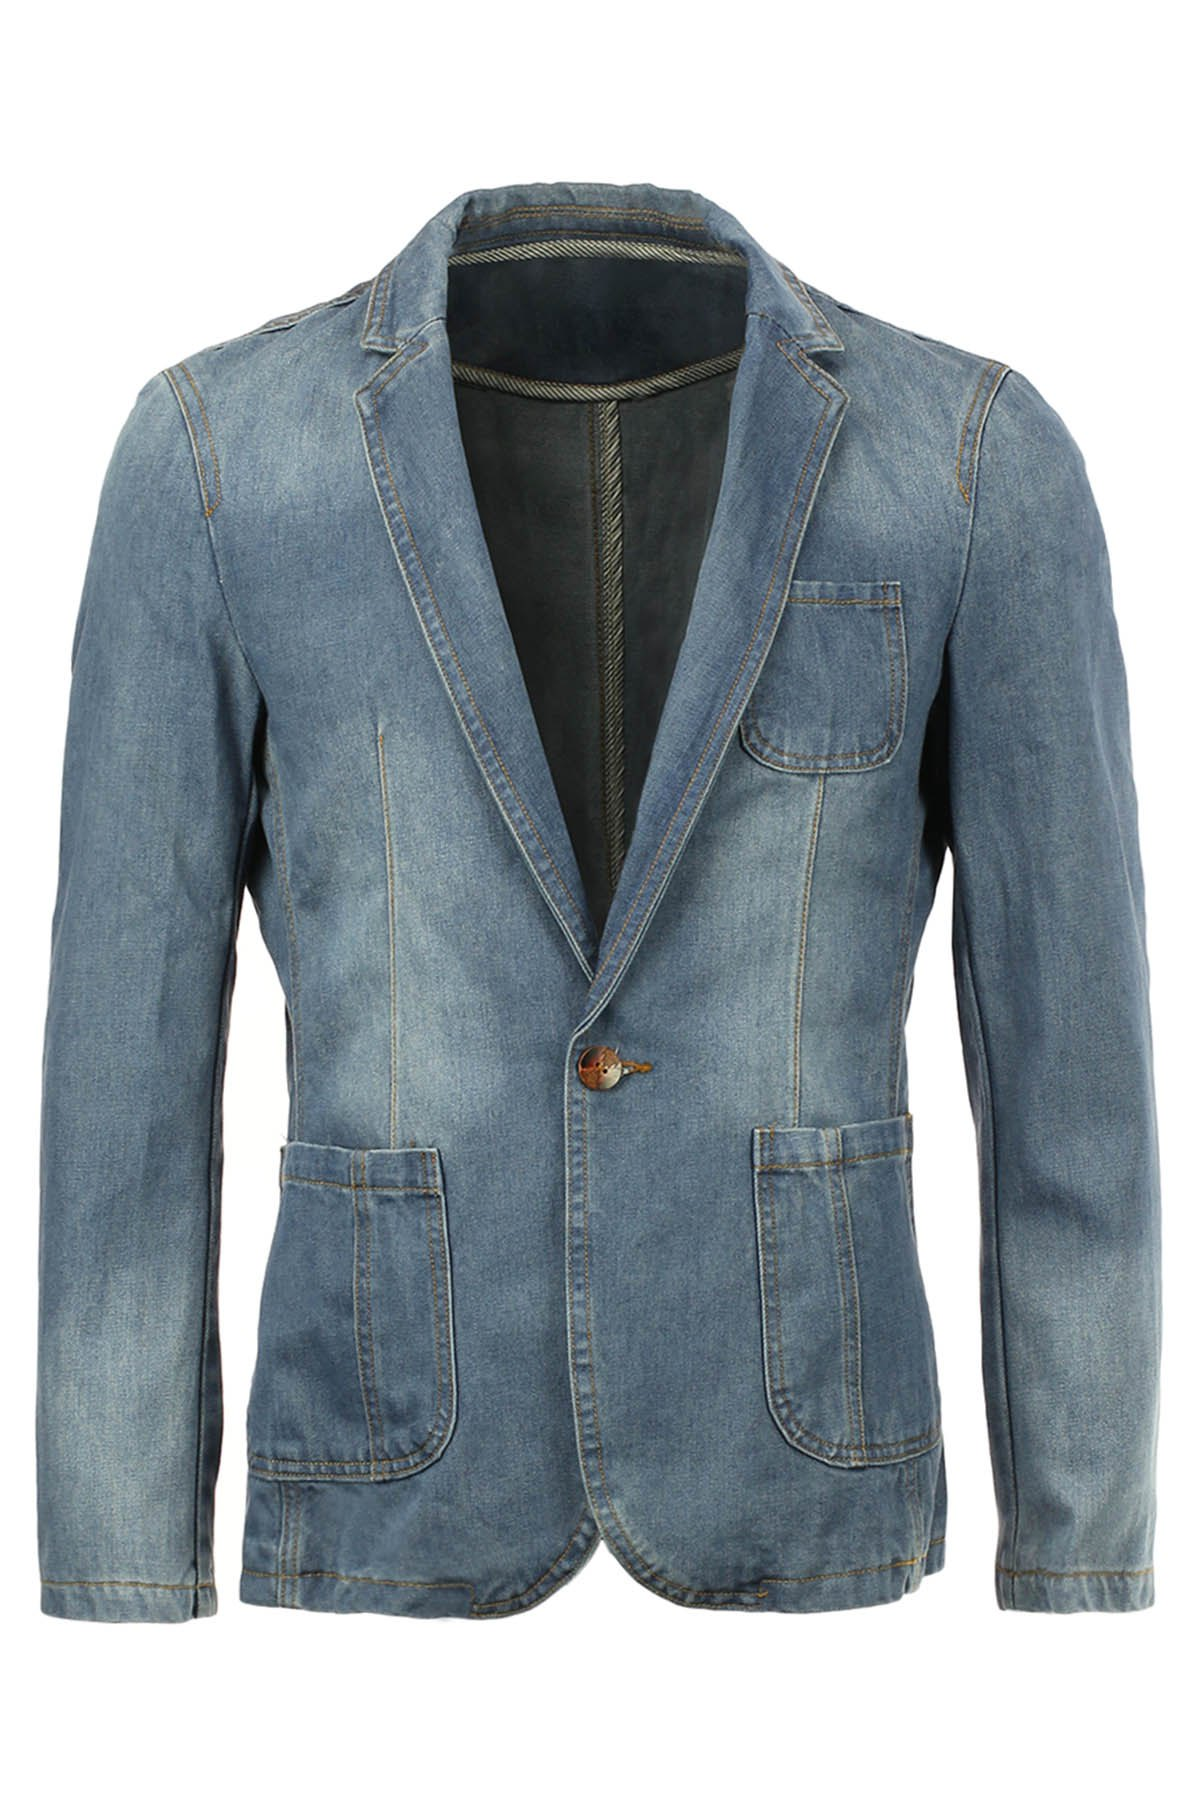 Lapel Single-Breasted Slimming Bleach Wash Pocket Long Sleeve Men's Denim Jacket - DEEP BLUE M